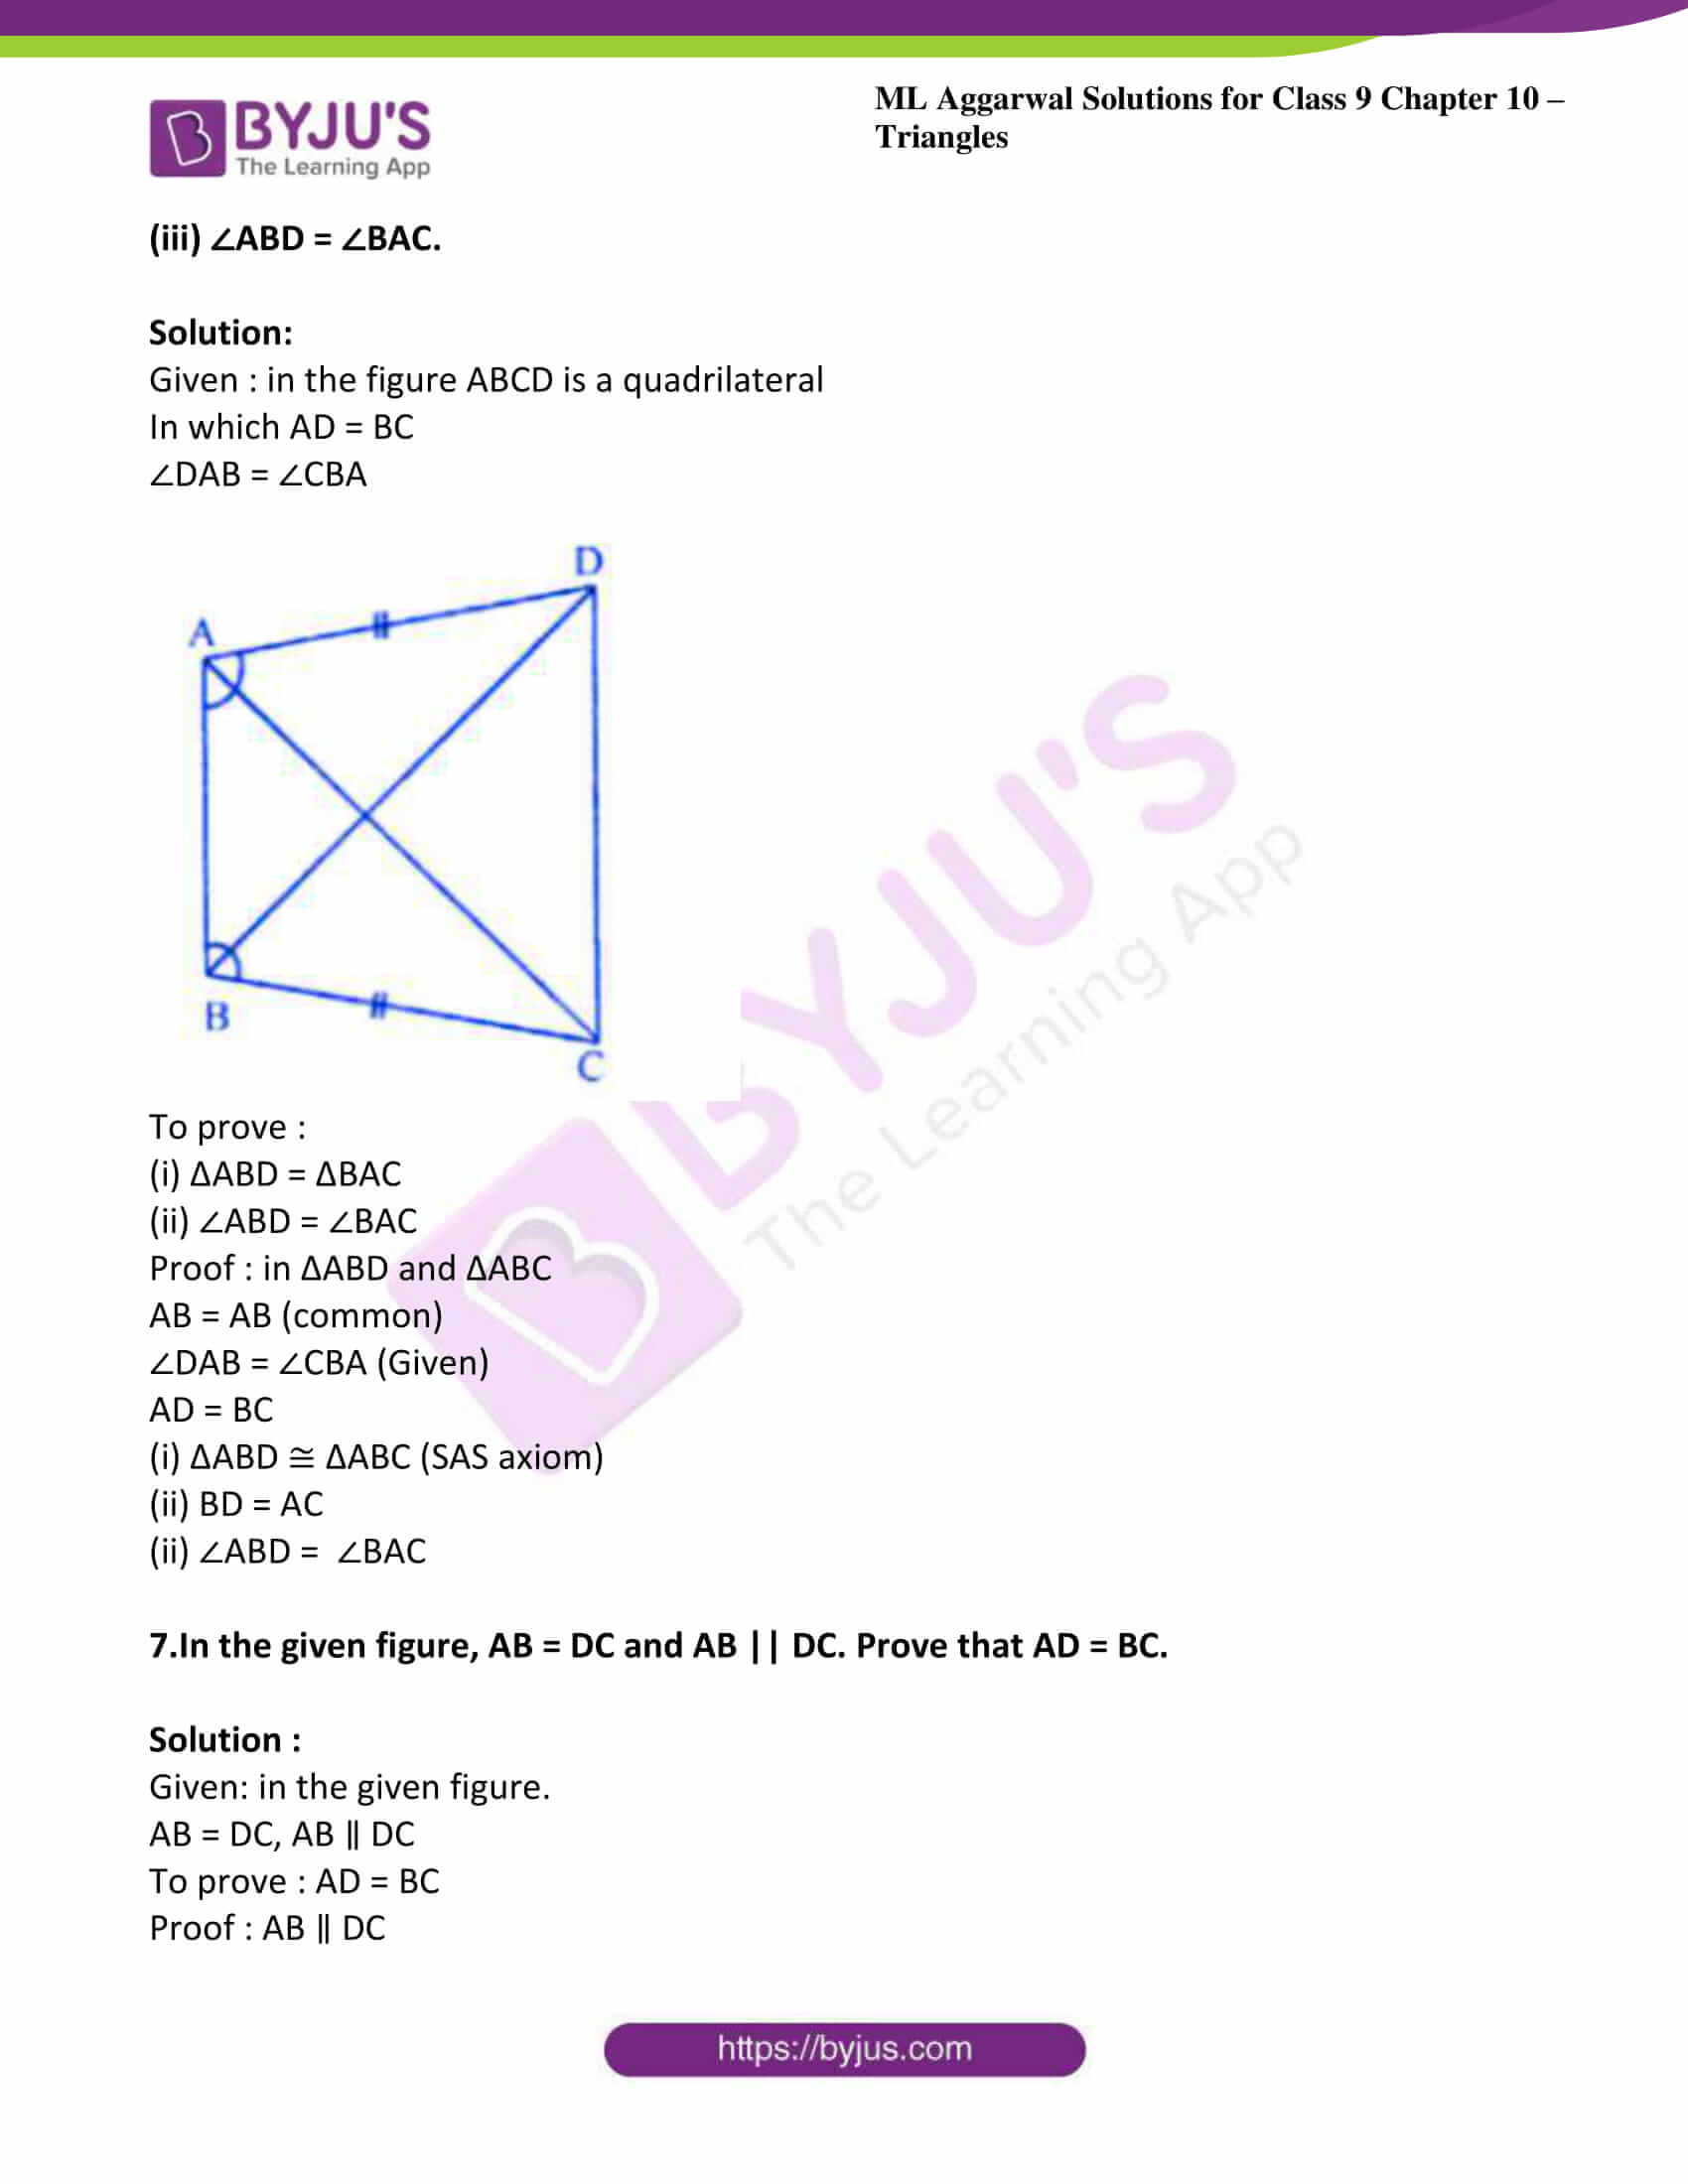 ml aggarwal solutions for class 9 maths chapter 10 05